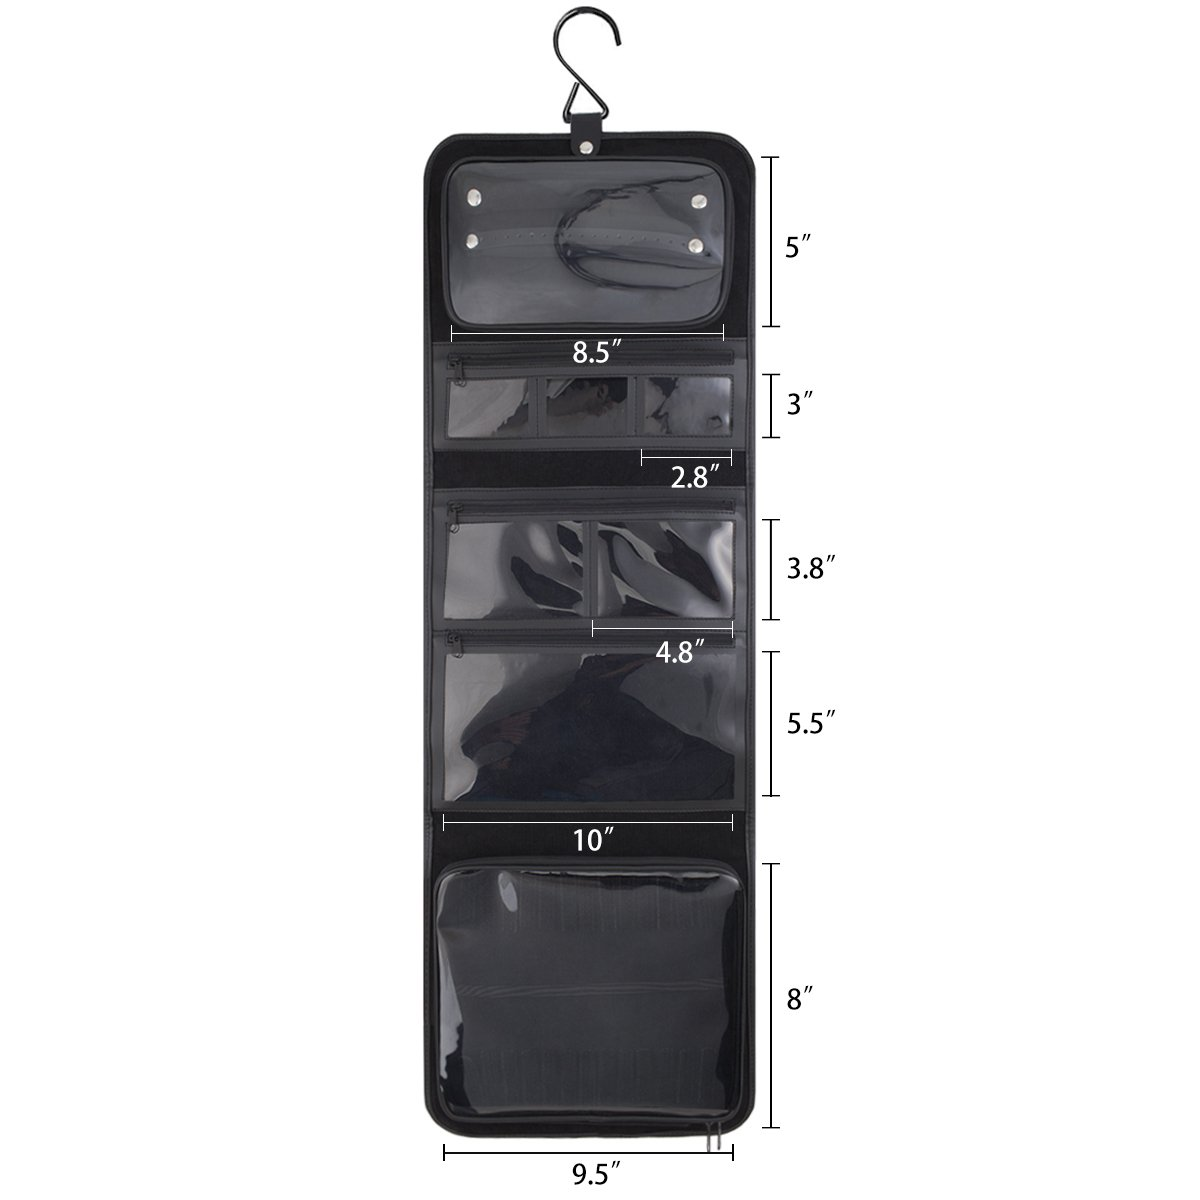 keproch Jewelry Accessories Portable&Fold-able Closet Hanging Storage Organizer with 8 Transparent Pocket Holders (Small, Black)